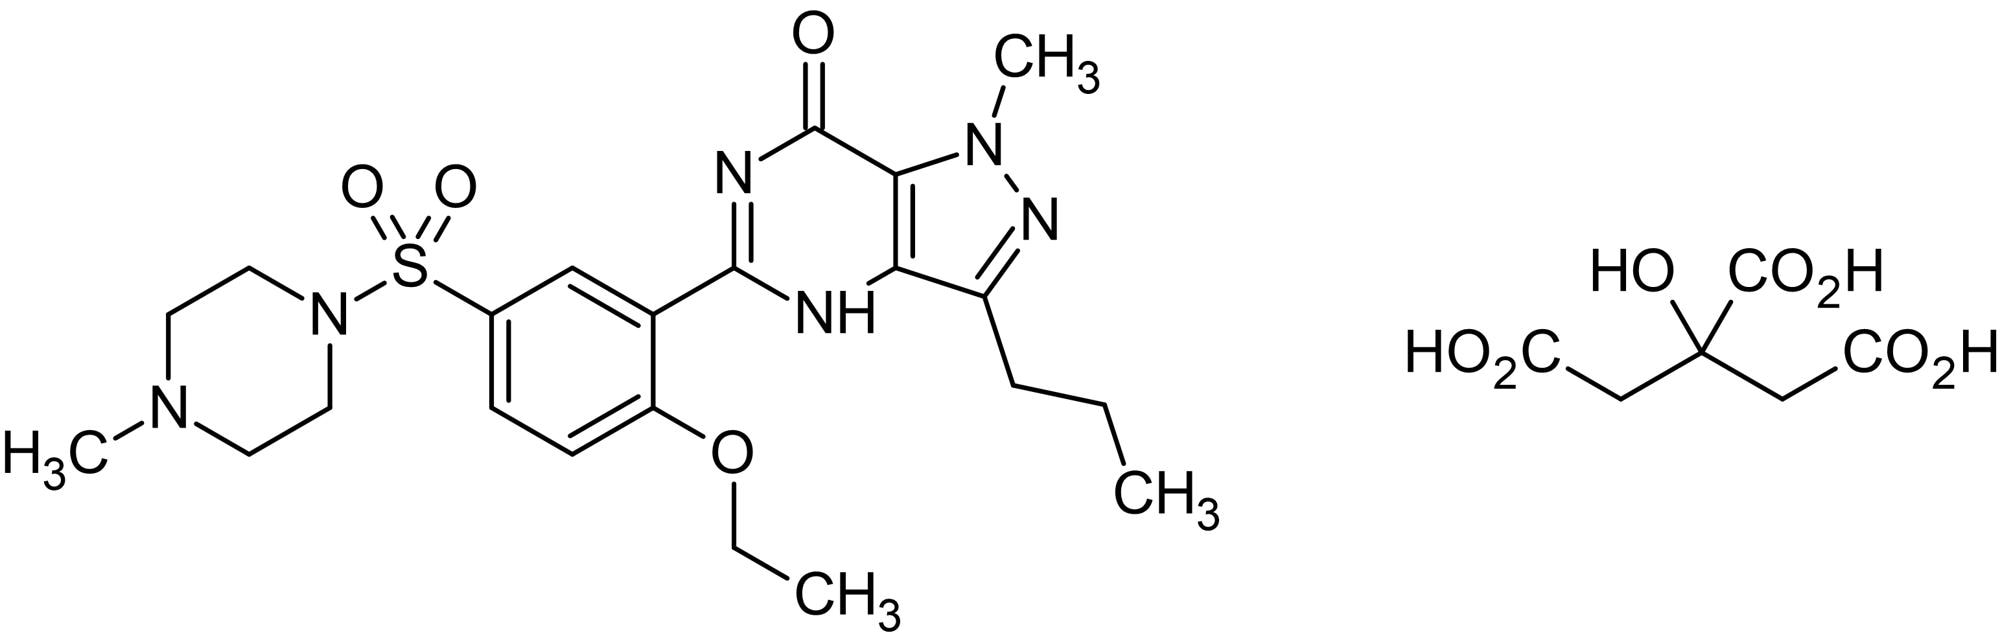 Chemical Structure - Sildenafil citrate, phosphodiesterase 5 (PDE5) inhibitor (ab141965)